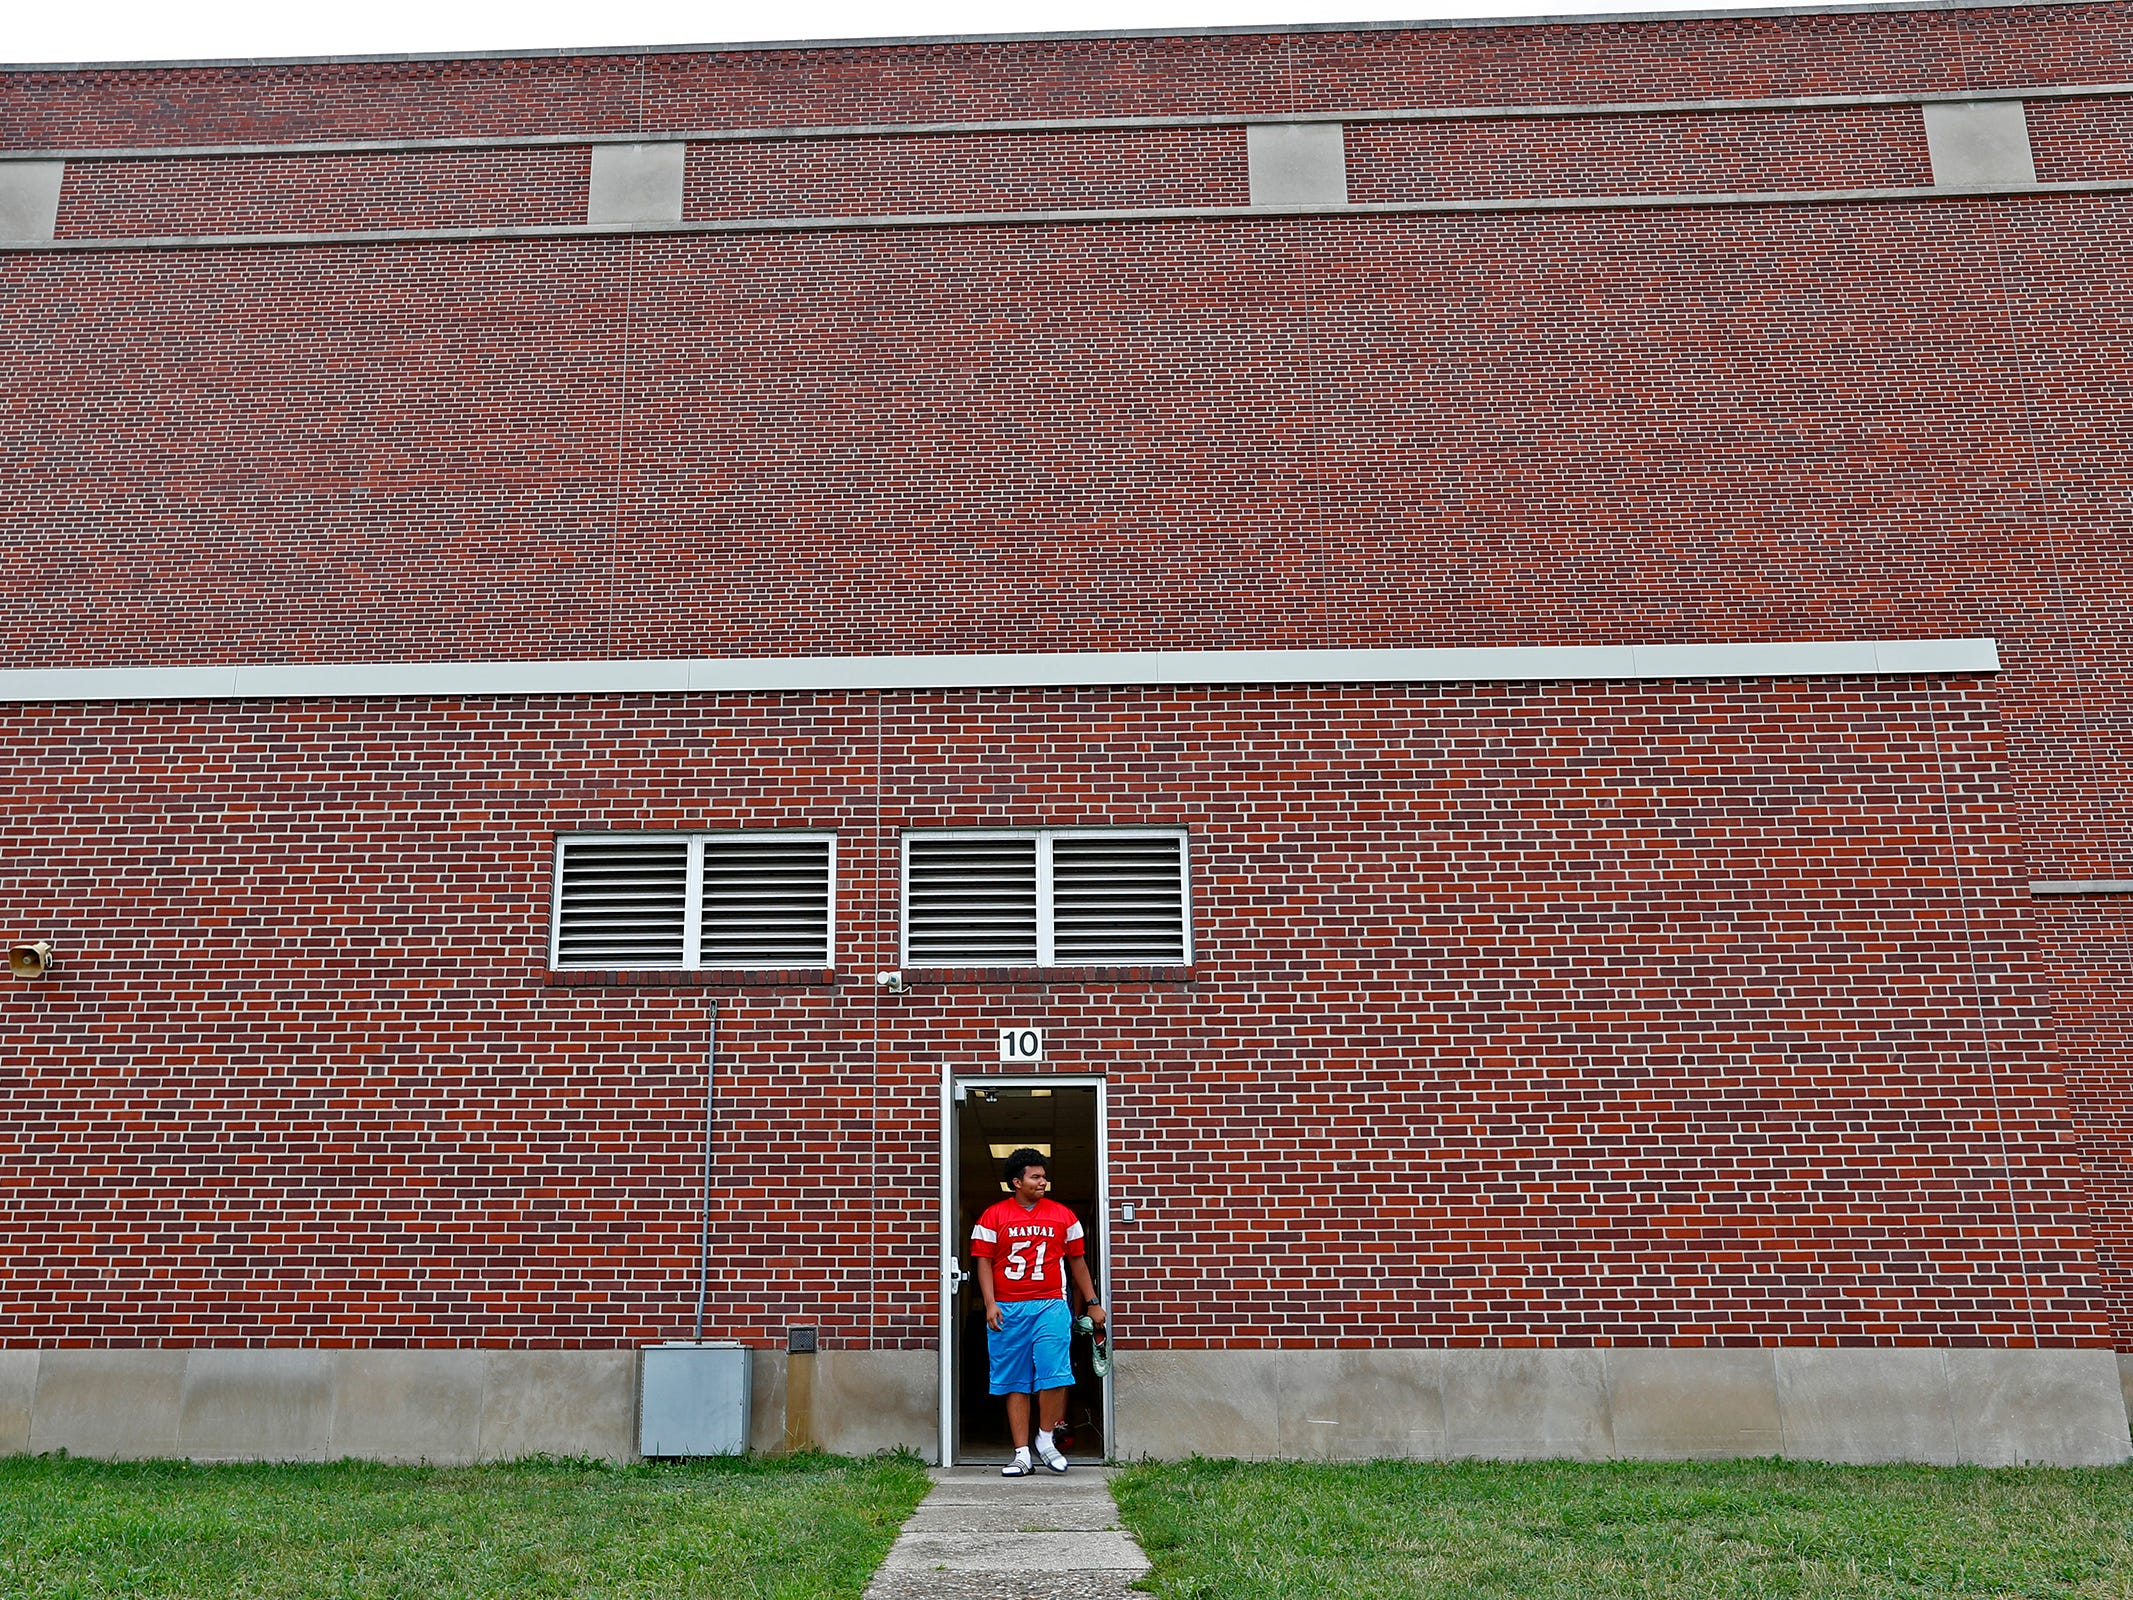 Lester heads out for football practice at Emmerich Manual High School, Monday, July 31, 2018.  He moved to Indianapolis when he was 15 years old and is set to graduate from Manual in 2019.  Lester, an undocumented immigrant from Honduras, dreams of going to college.  He hopes that football will help him pay for that dream.